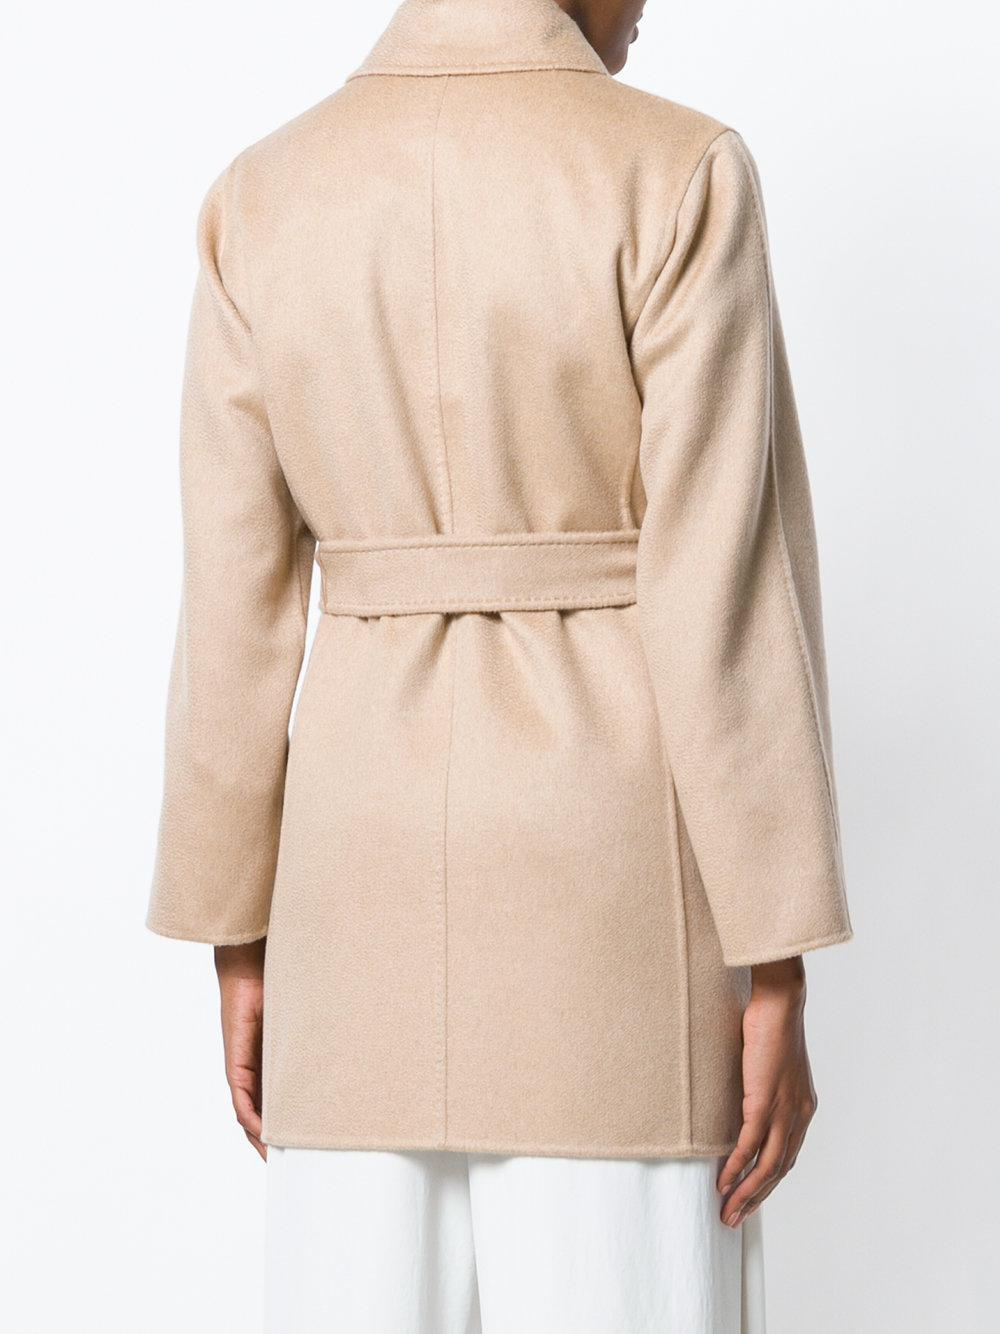 duster coat - Nude & Neutrals Max Mara The Cheapest Online F4dIa3v